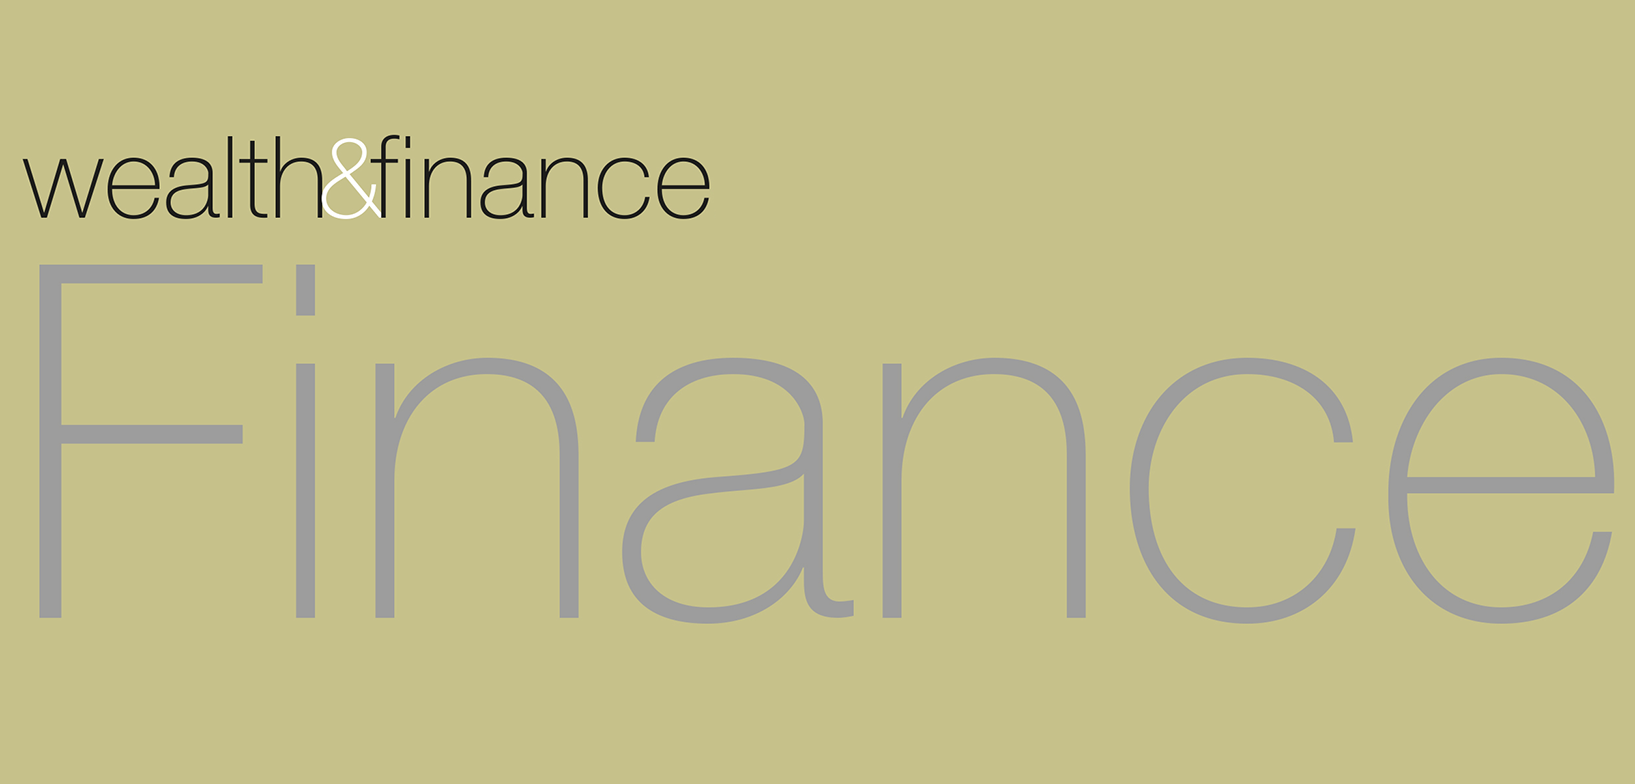 Wealth and Finance Awards 2019